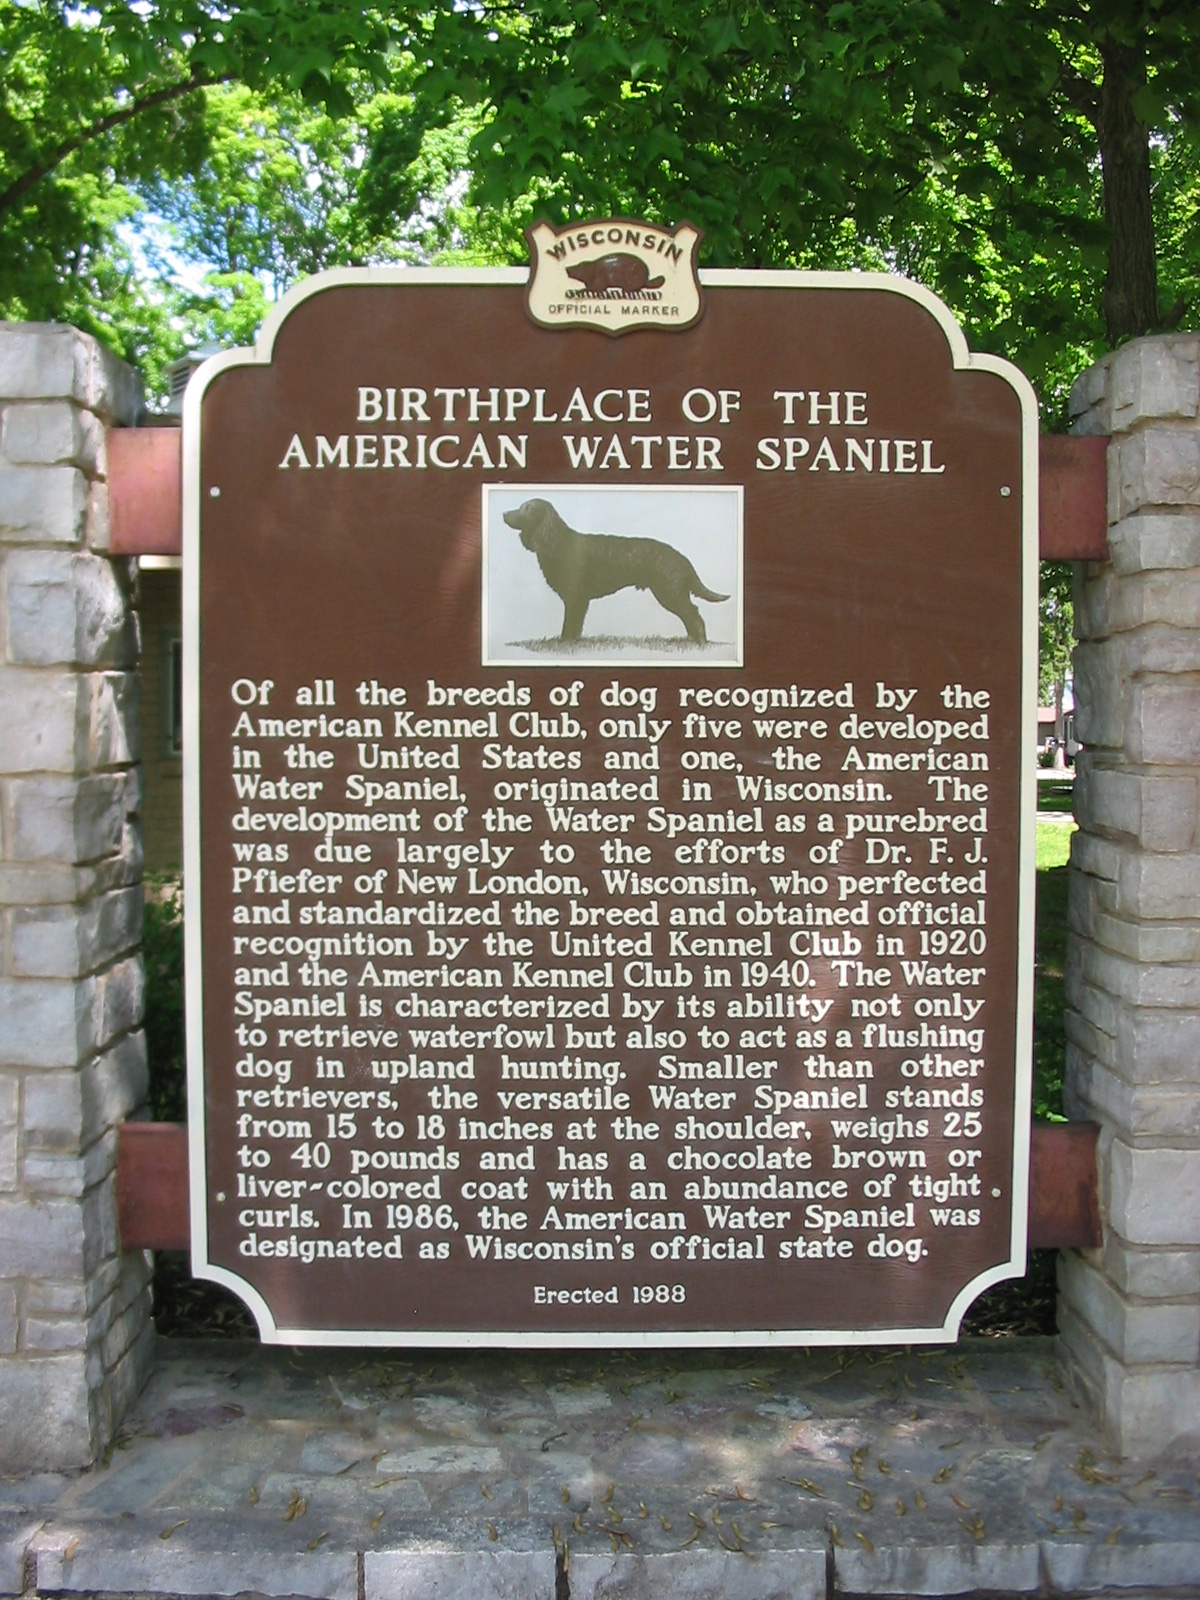 Birthplace of the American Water Spaniel Marker